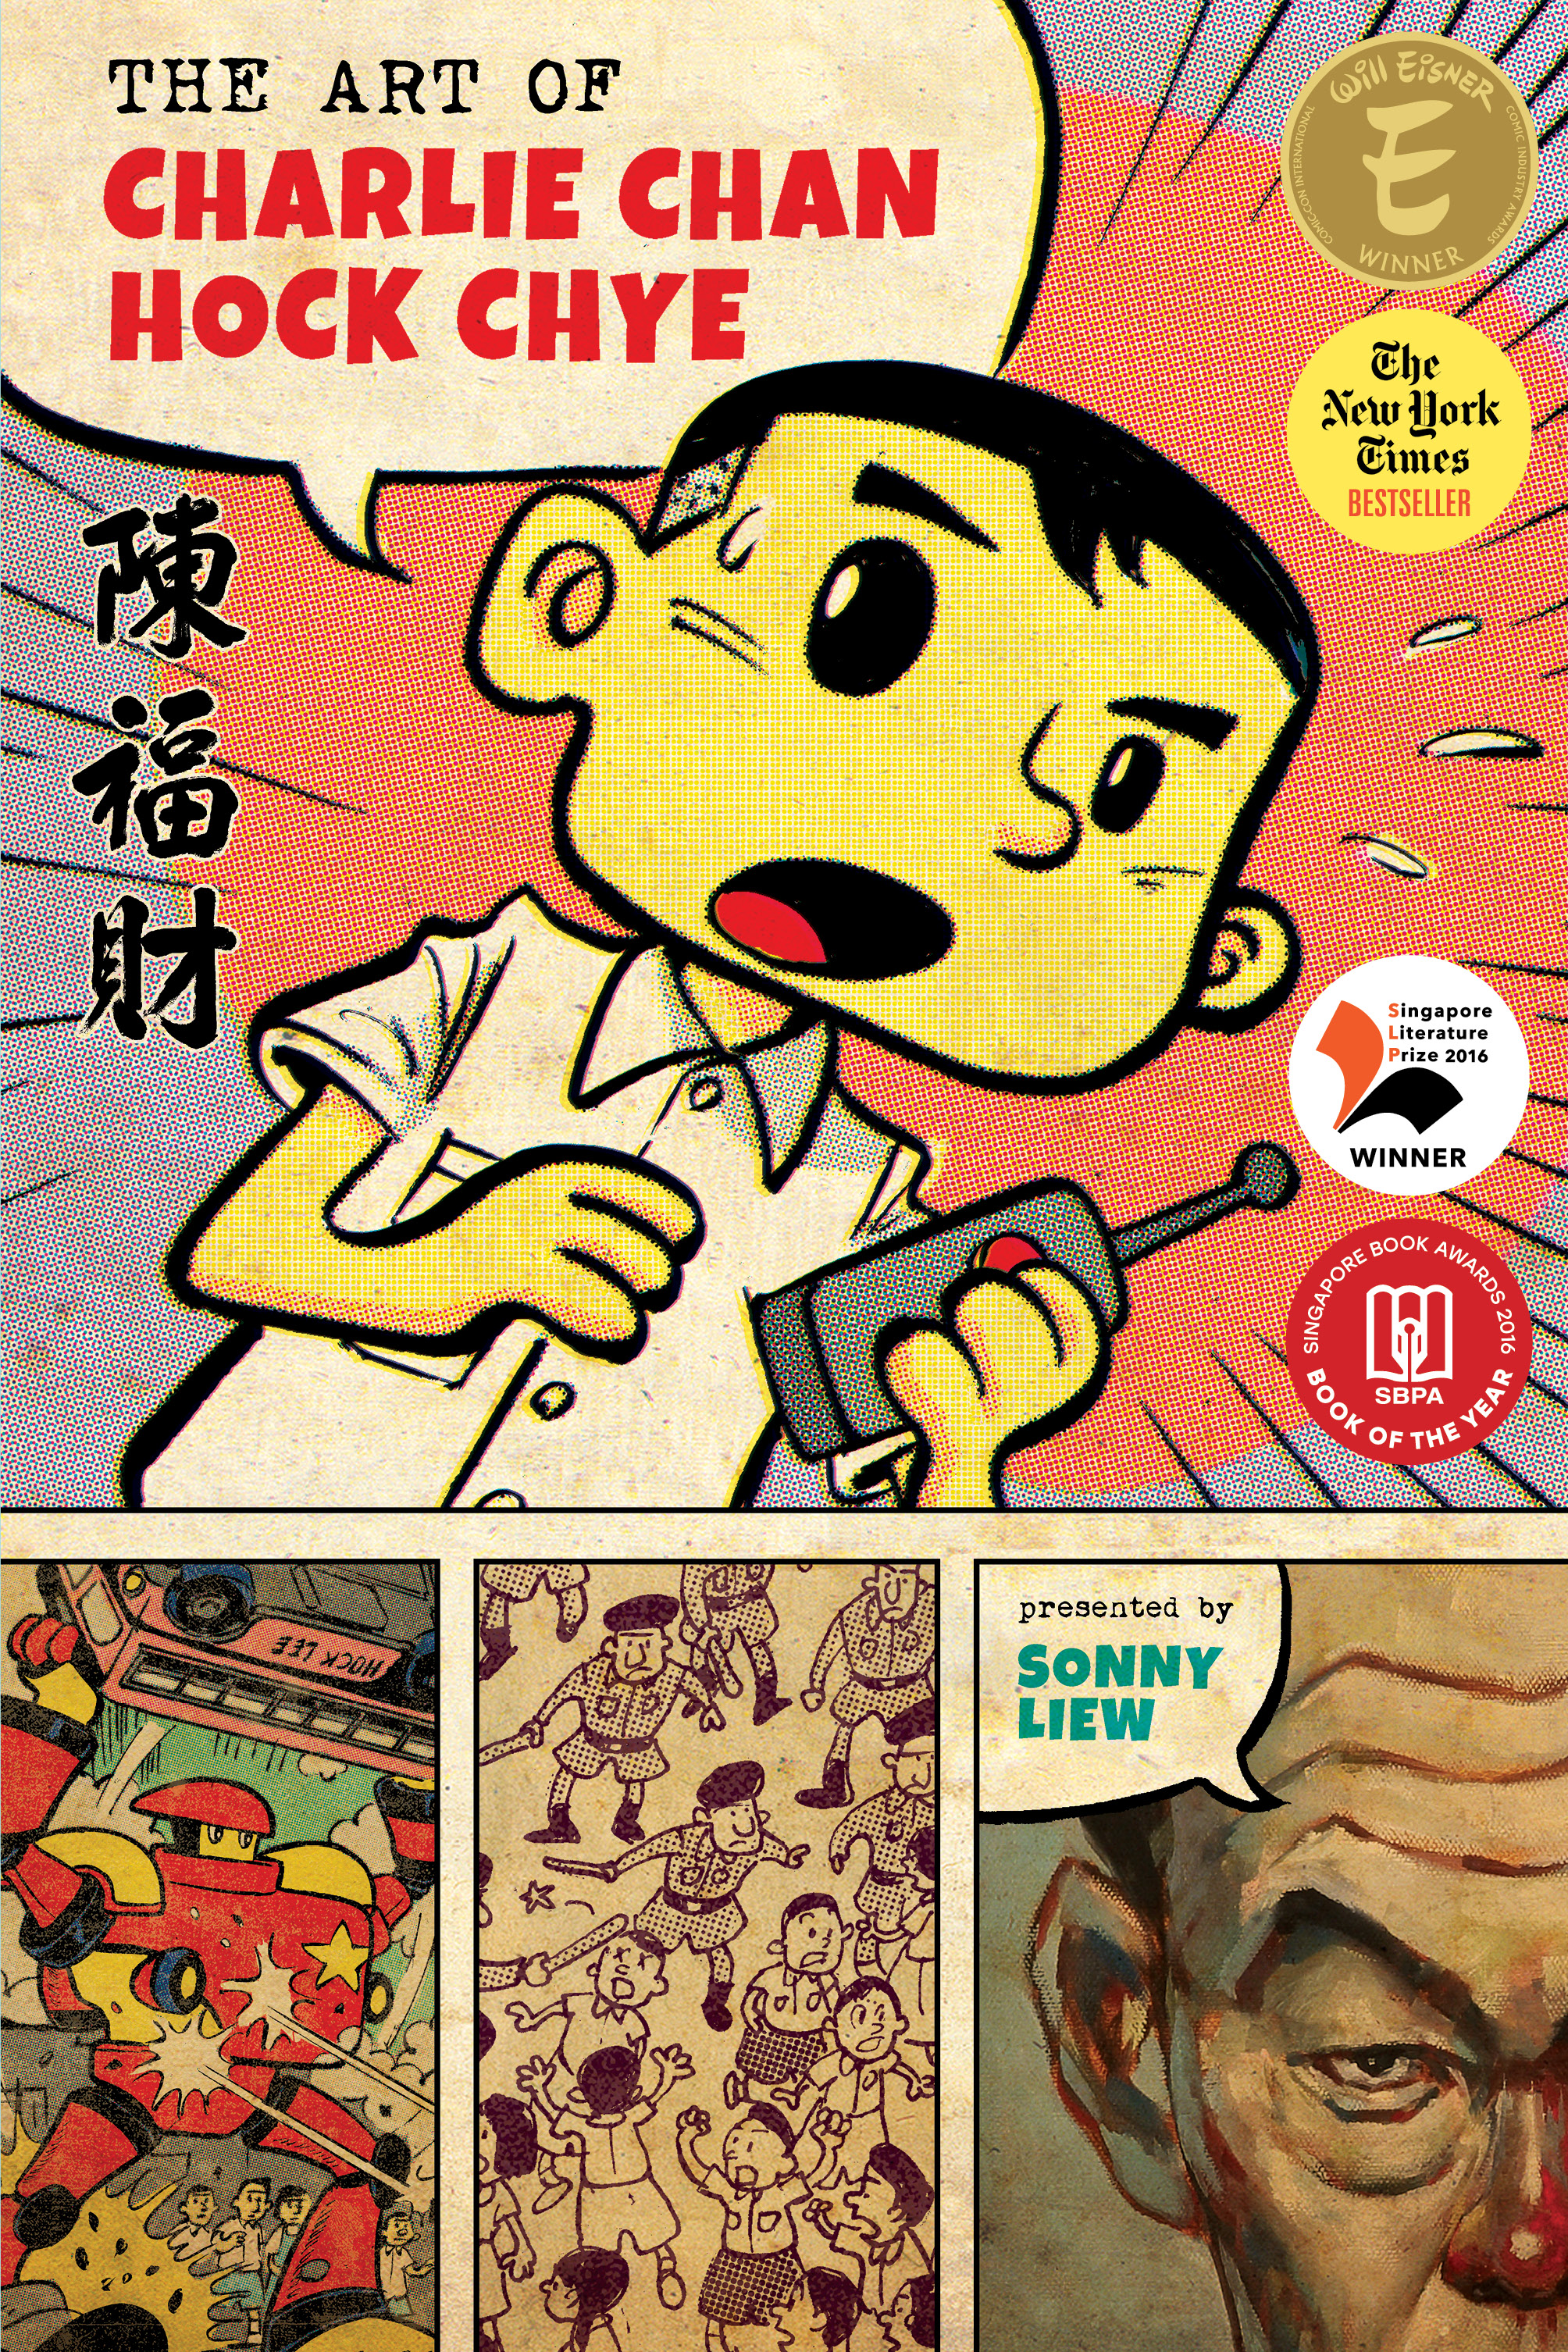 - THE ART OF CHARLIE CHAN HOCK CHYESonny LiewAward-winning graphic novelist Sonny Liew blurs the lines between reality and ction with this three-time Eisner Award-winning graphic novel that traces Chan's journey amidst the tumultuous times of pre-independent Singapore through to the hyper-modern metropolis the island city-state is today. Bringing together a dazzling array of genres, styles and forms, the multi-award-winning graphic novel is by turns exhilarating, funny and moving, reclaiming and reinventing a lost past and pushing the boundaries of the comic book medium in a brilliant retelling of the Singapore Story.£19.99Graphic novel978-191-20-9874-3March 2019GET THE BOOK HERE